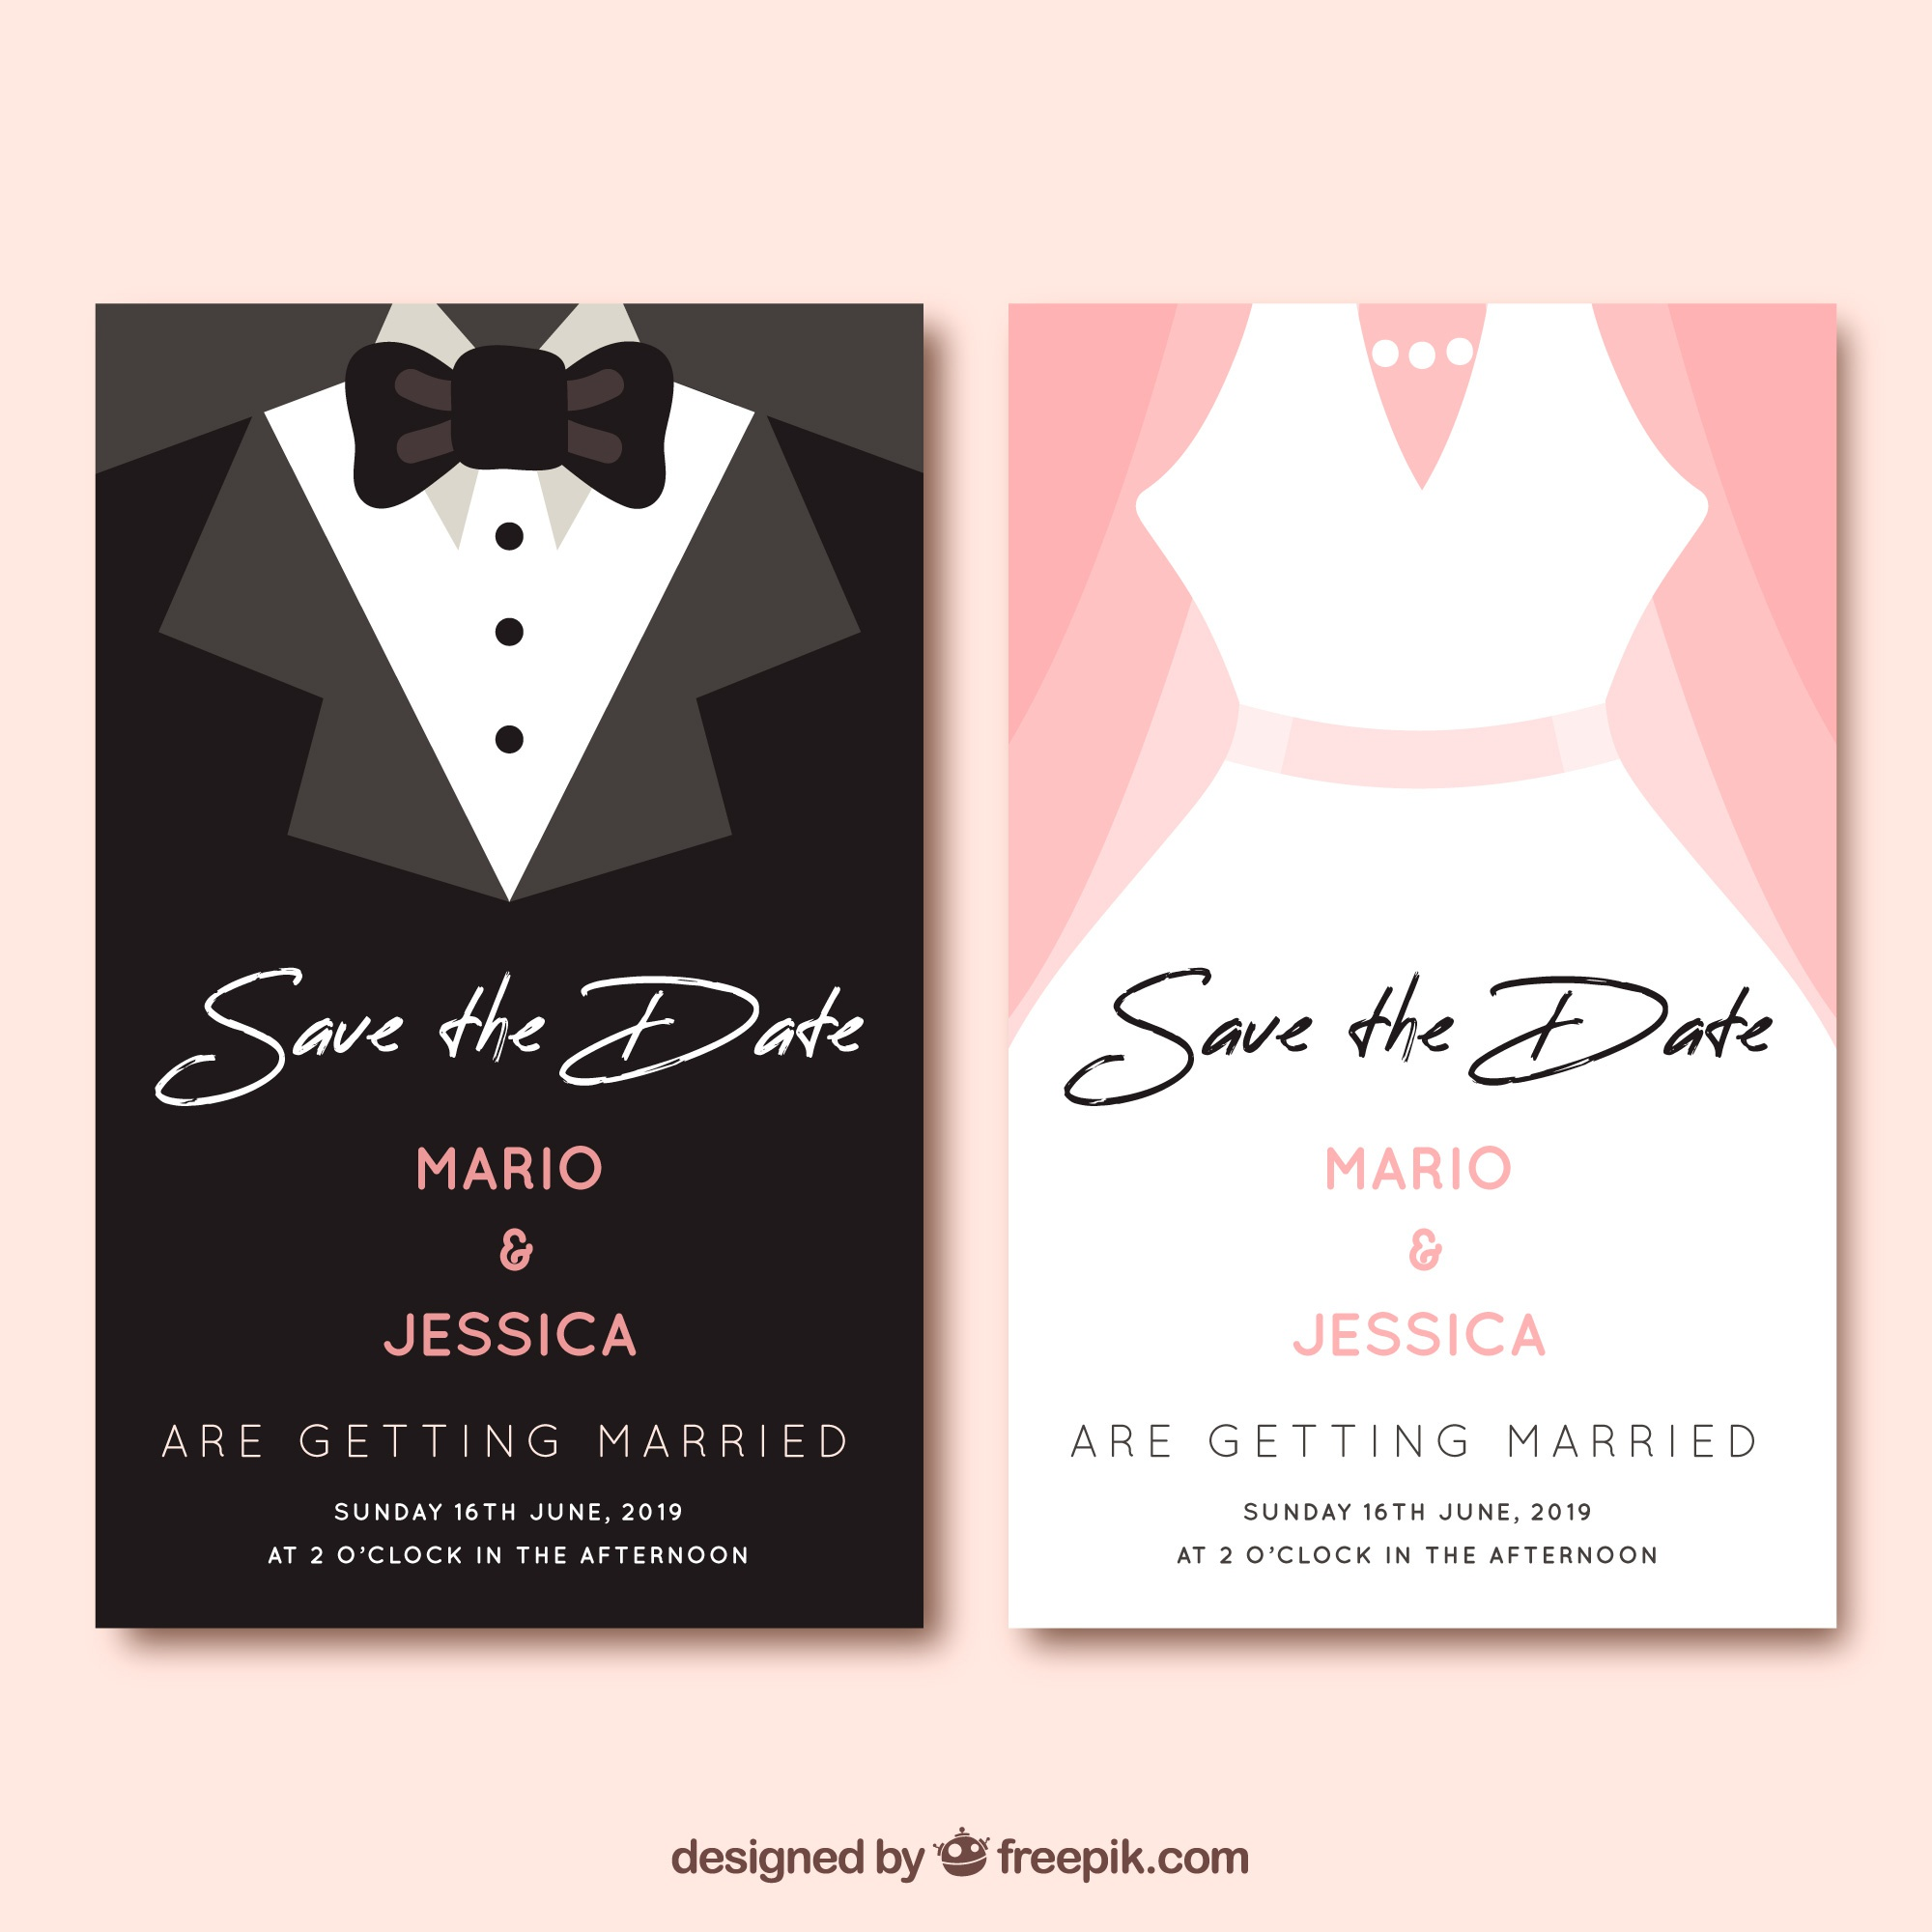 Save the date card in flat style